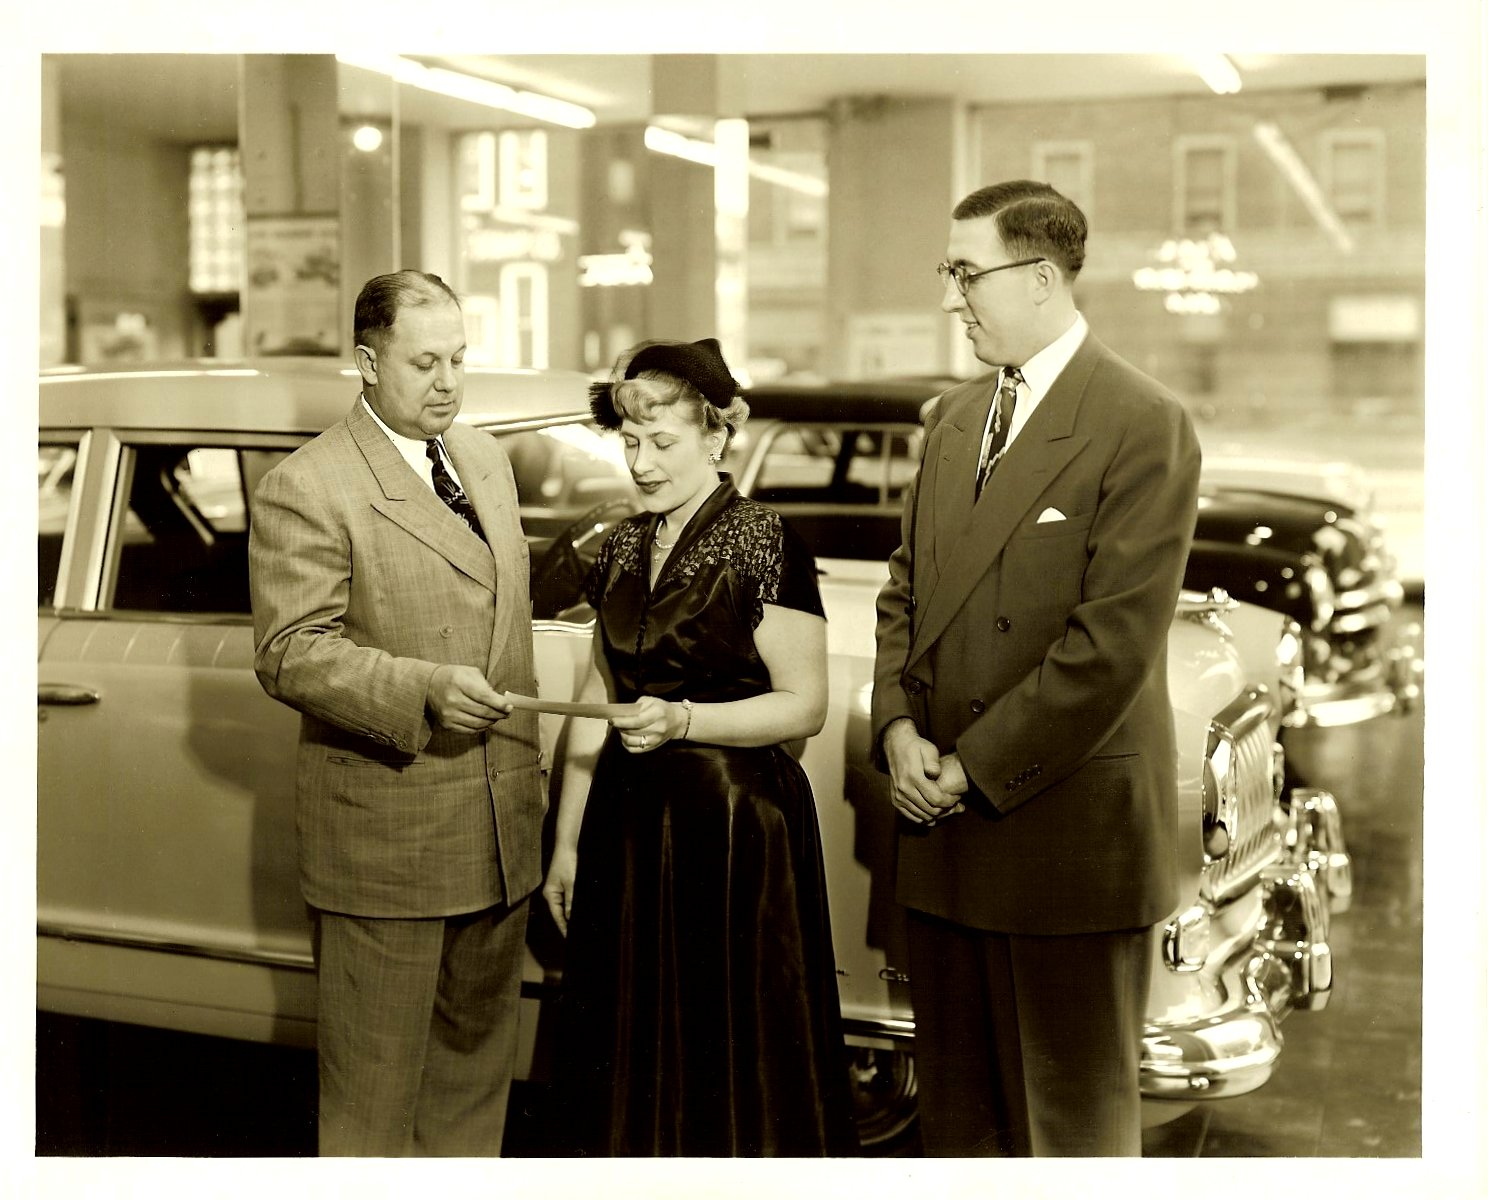 A NASH automobile dealership ca. 1952 10″x8″ Black & White photograph